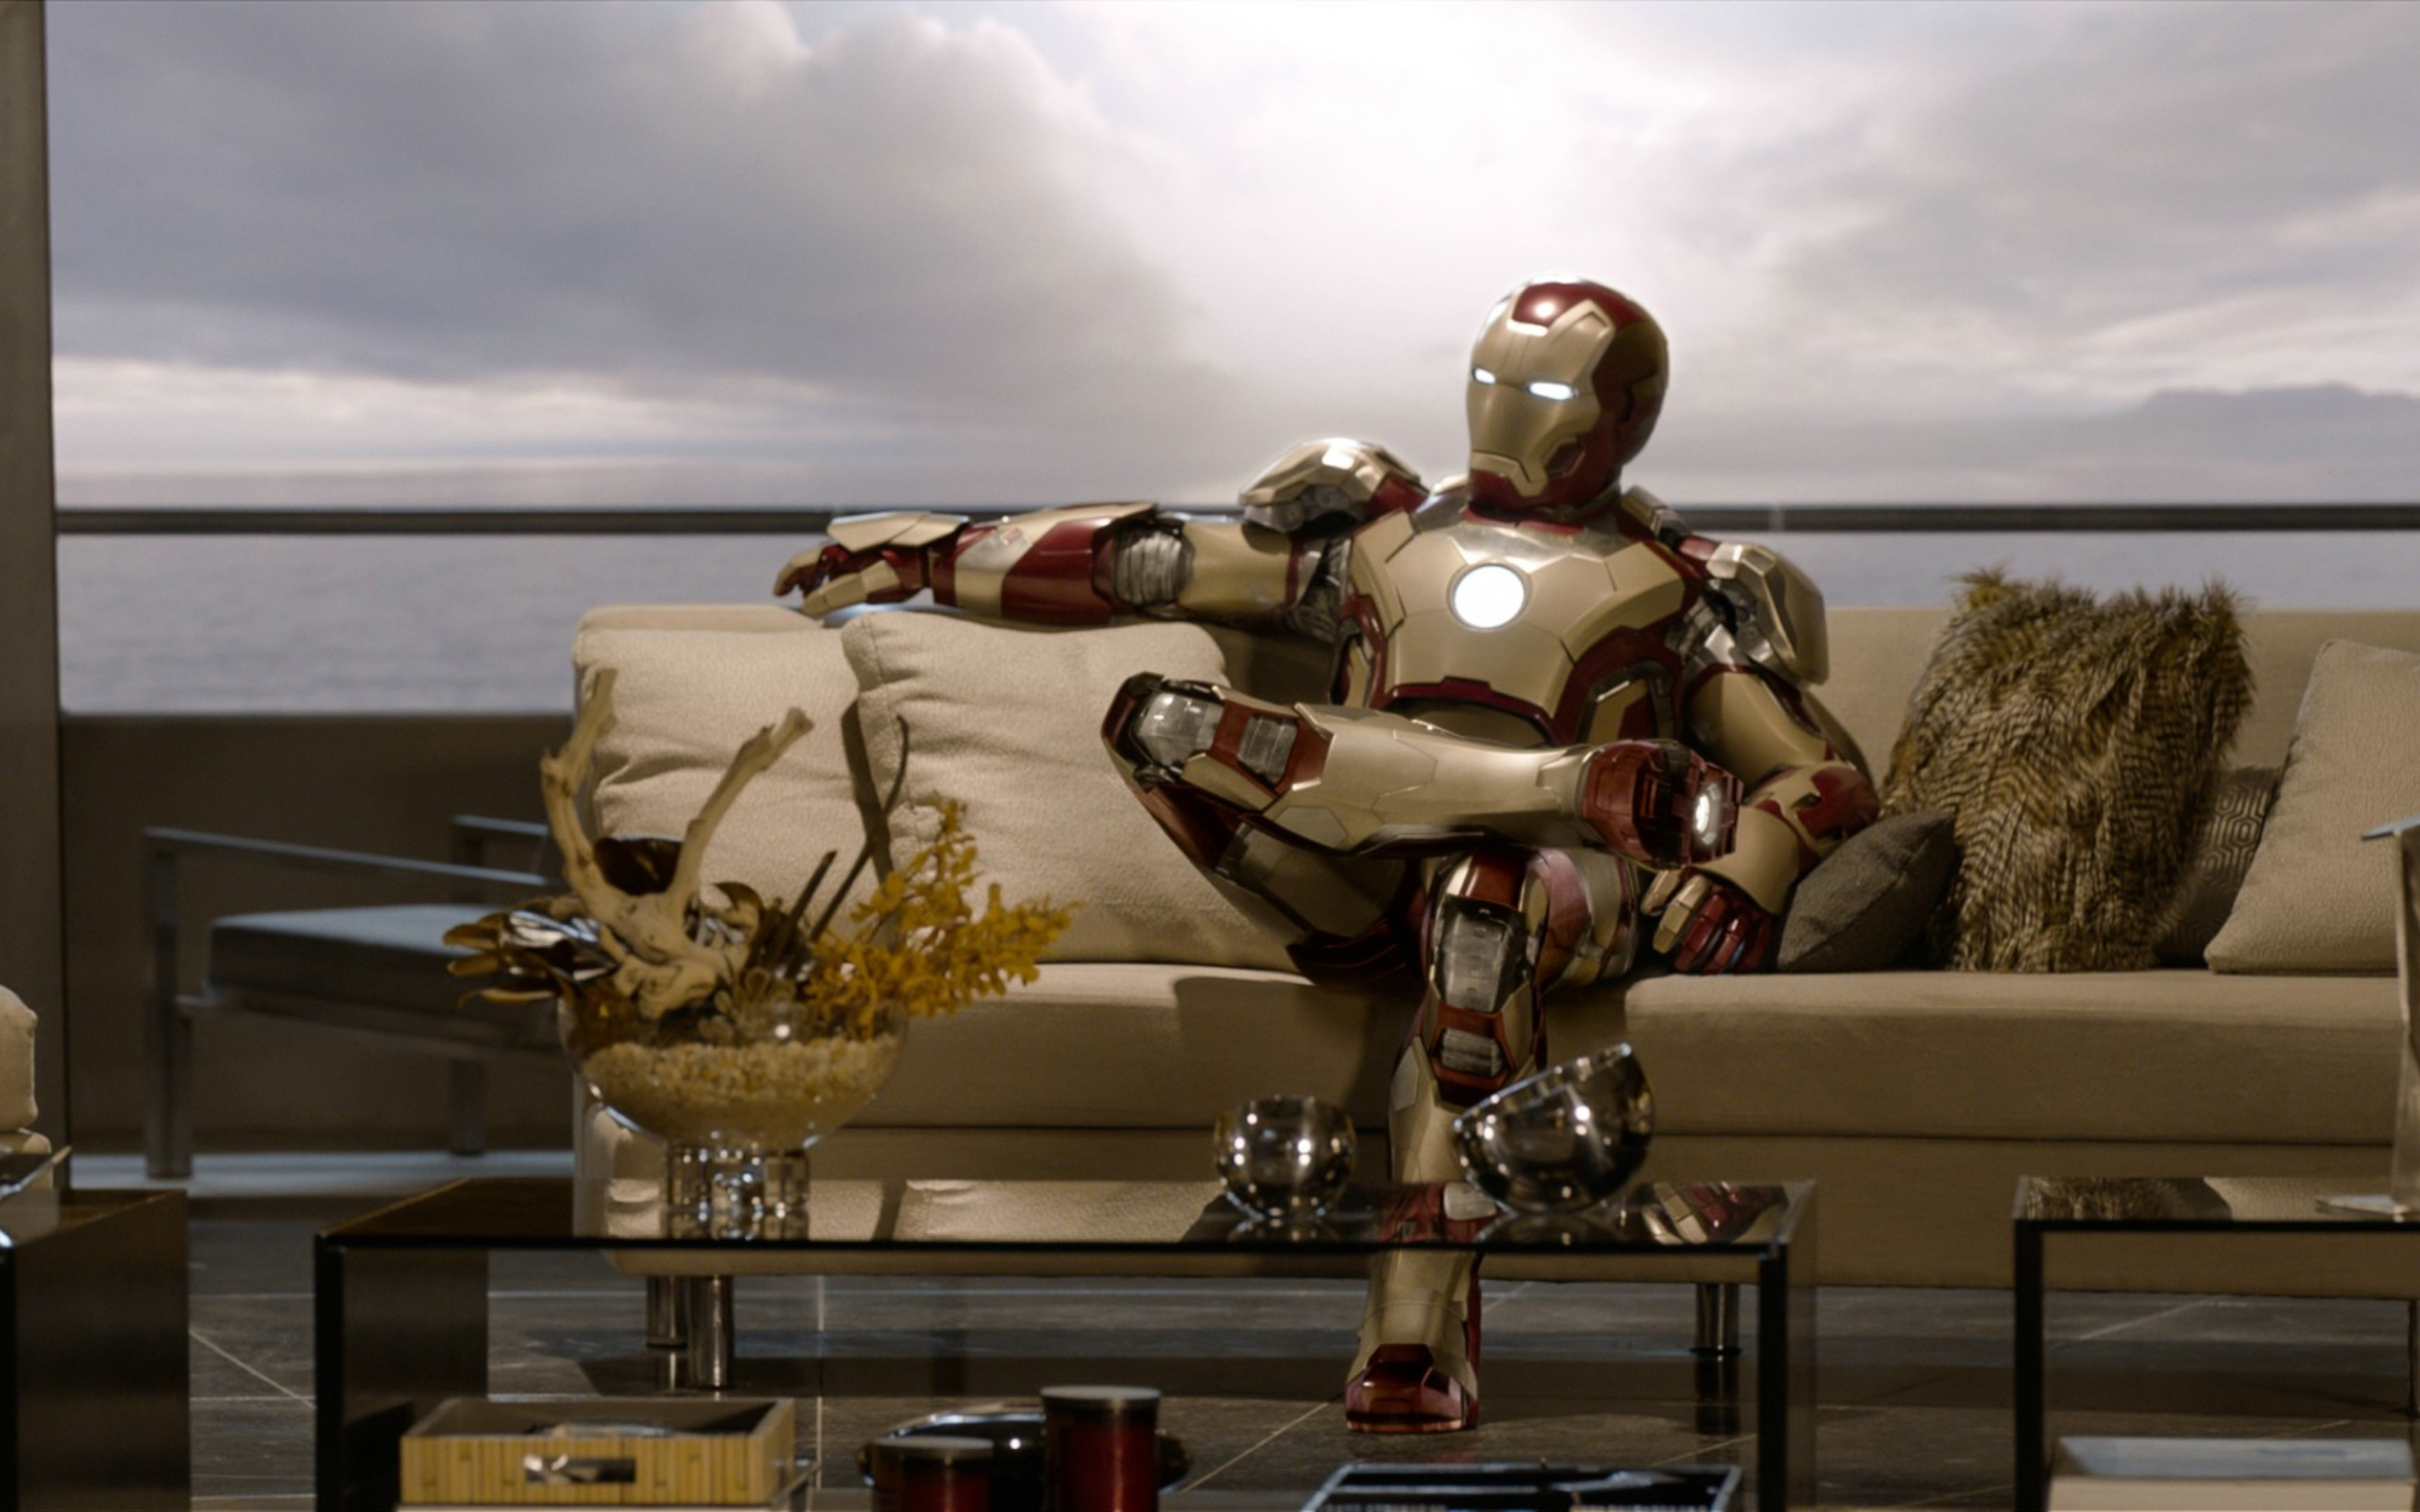 Download-x-Iron-Man-sits-on-a-sofa-movies-download-beautiful-HD-1080p-wallpaper-wp34012078